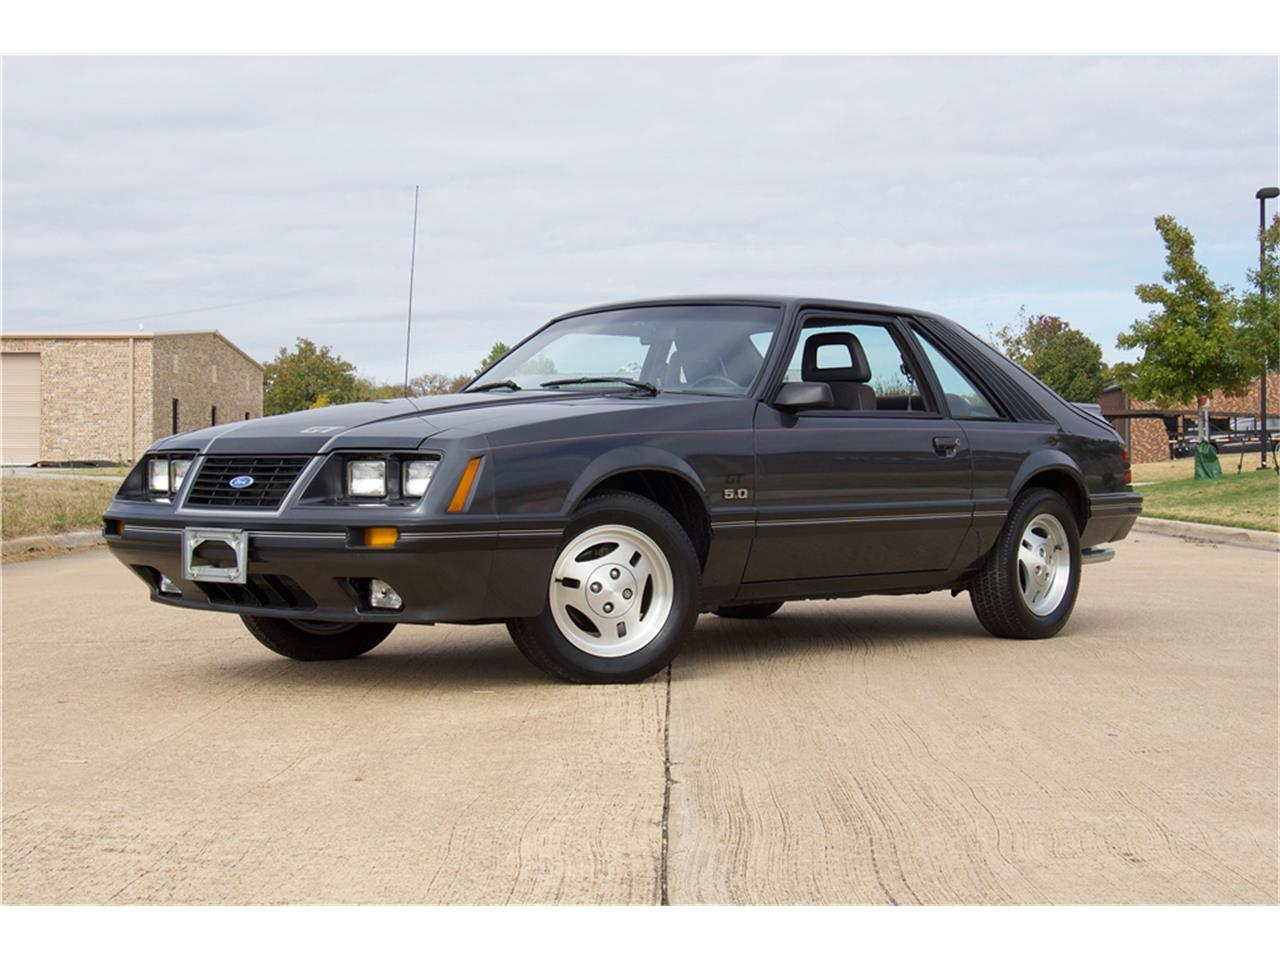 Large picture of 84 mustang gt mldj